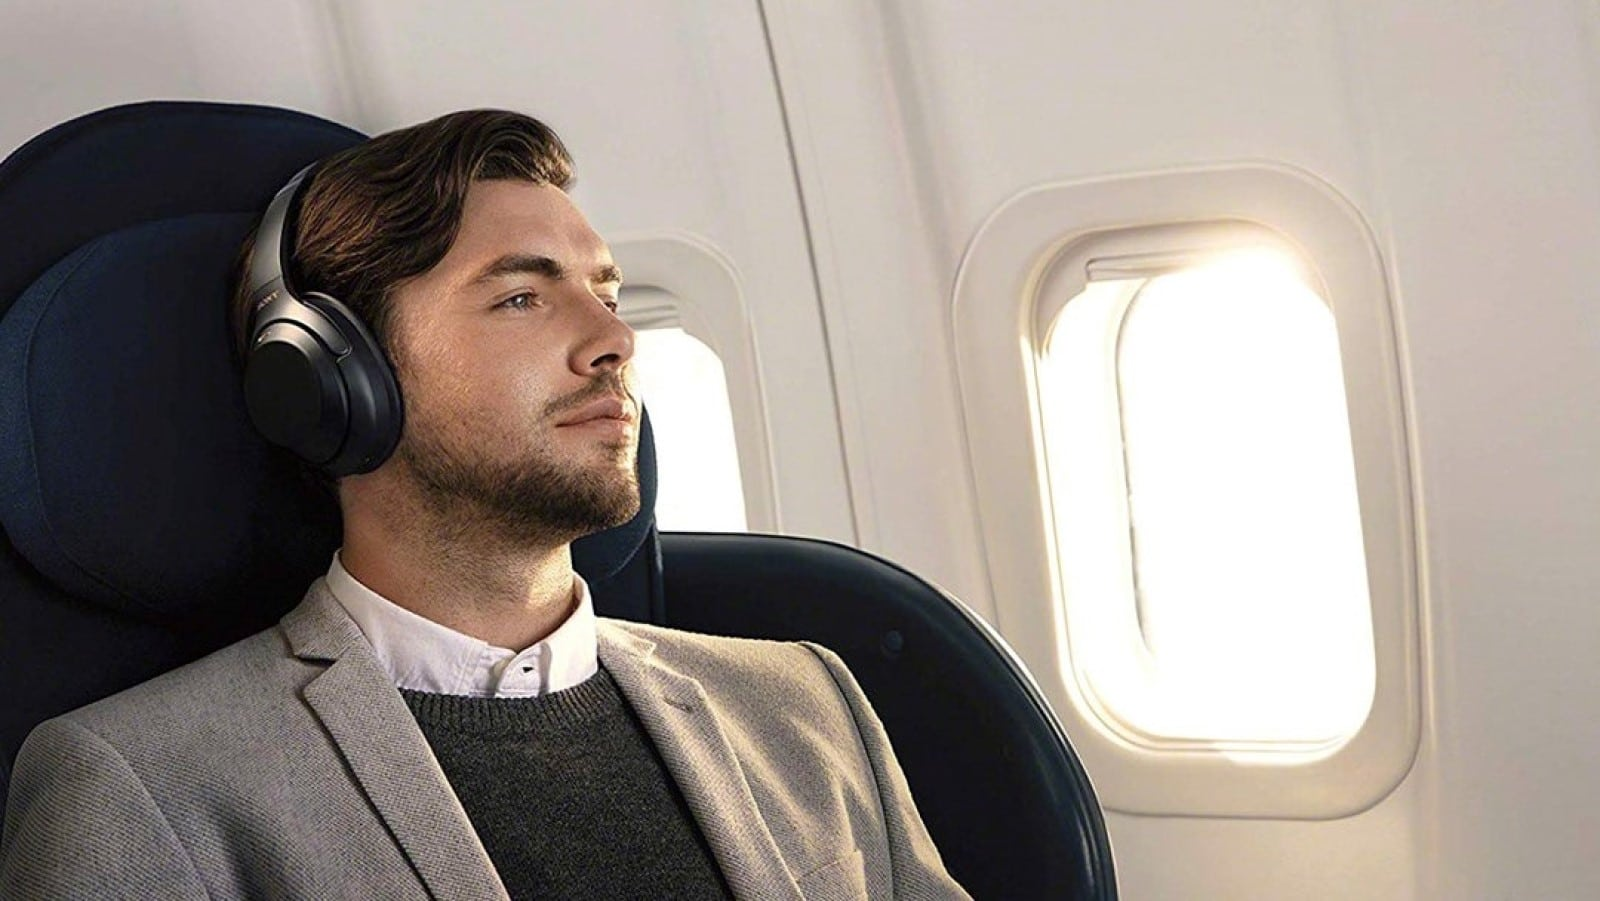 Sony WH-1000XM3 headphones on a guy in a plane